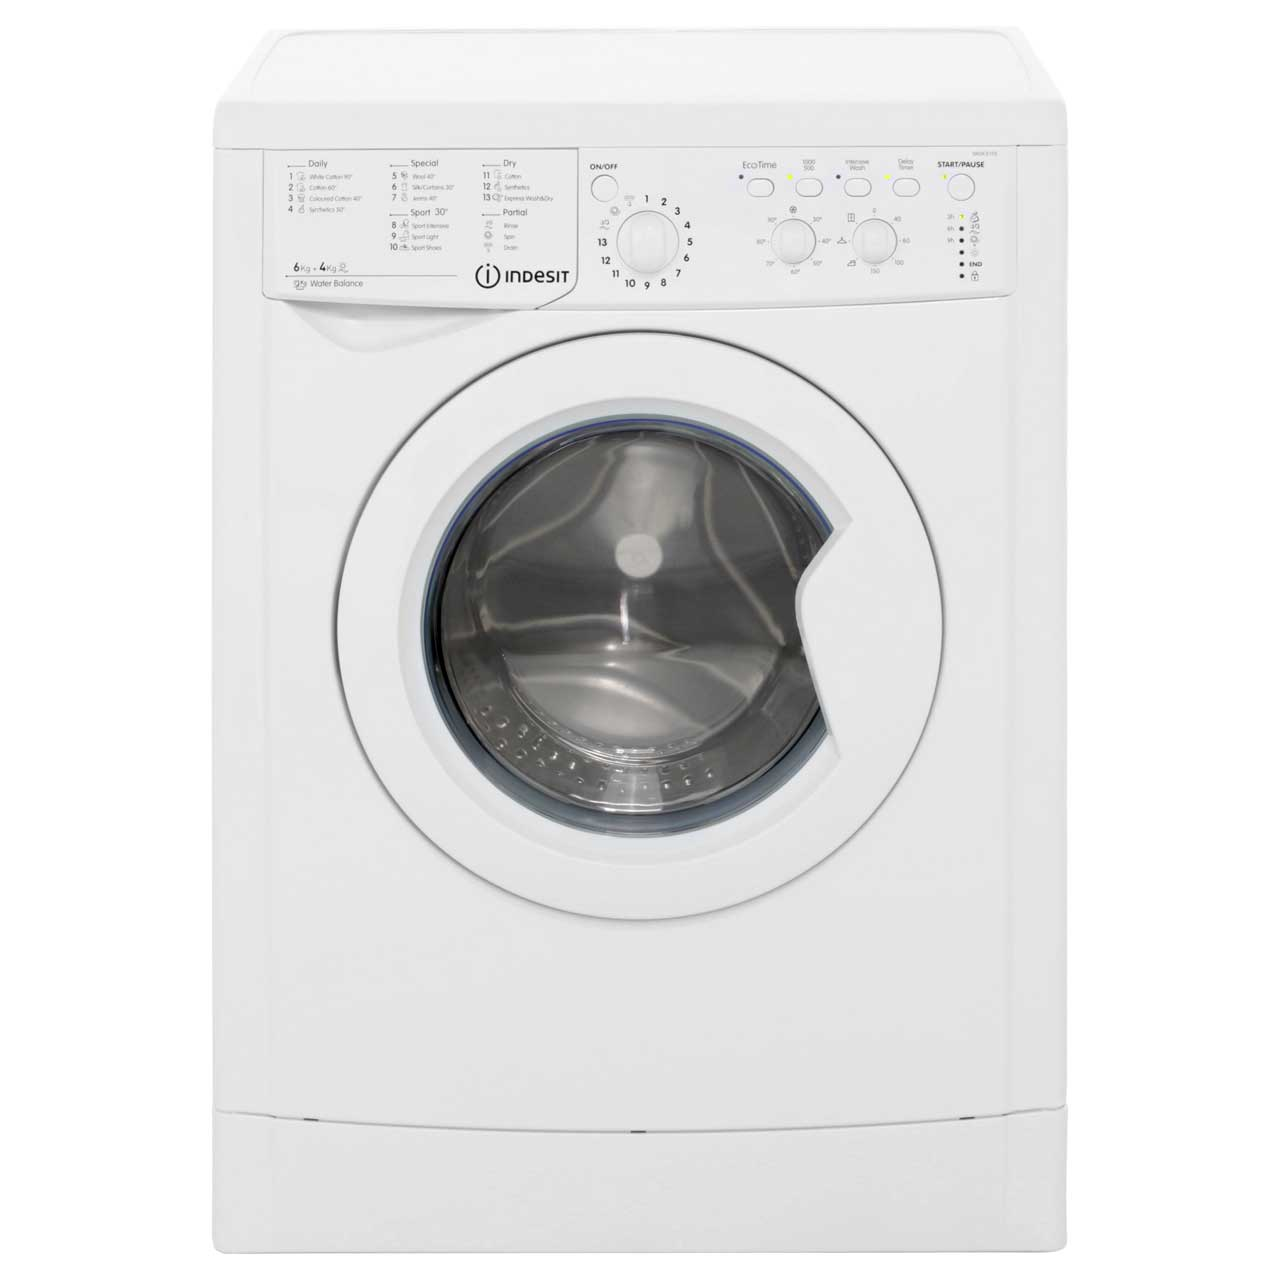 Indesit IWDC6105 6Kg / 4Kg Washer Dryer with 1000 rpm - White